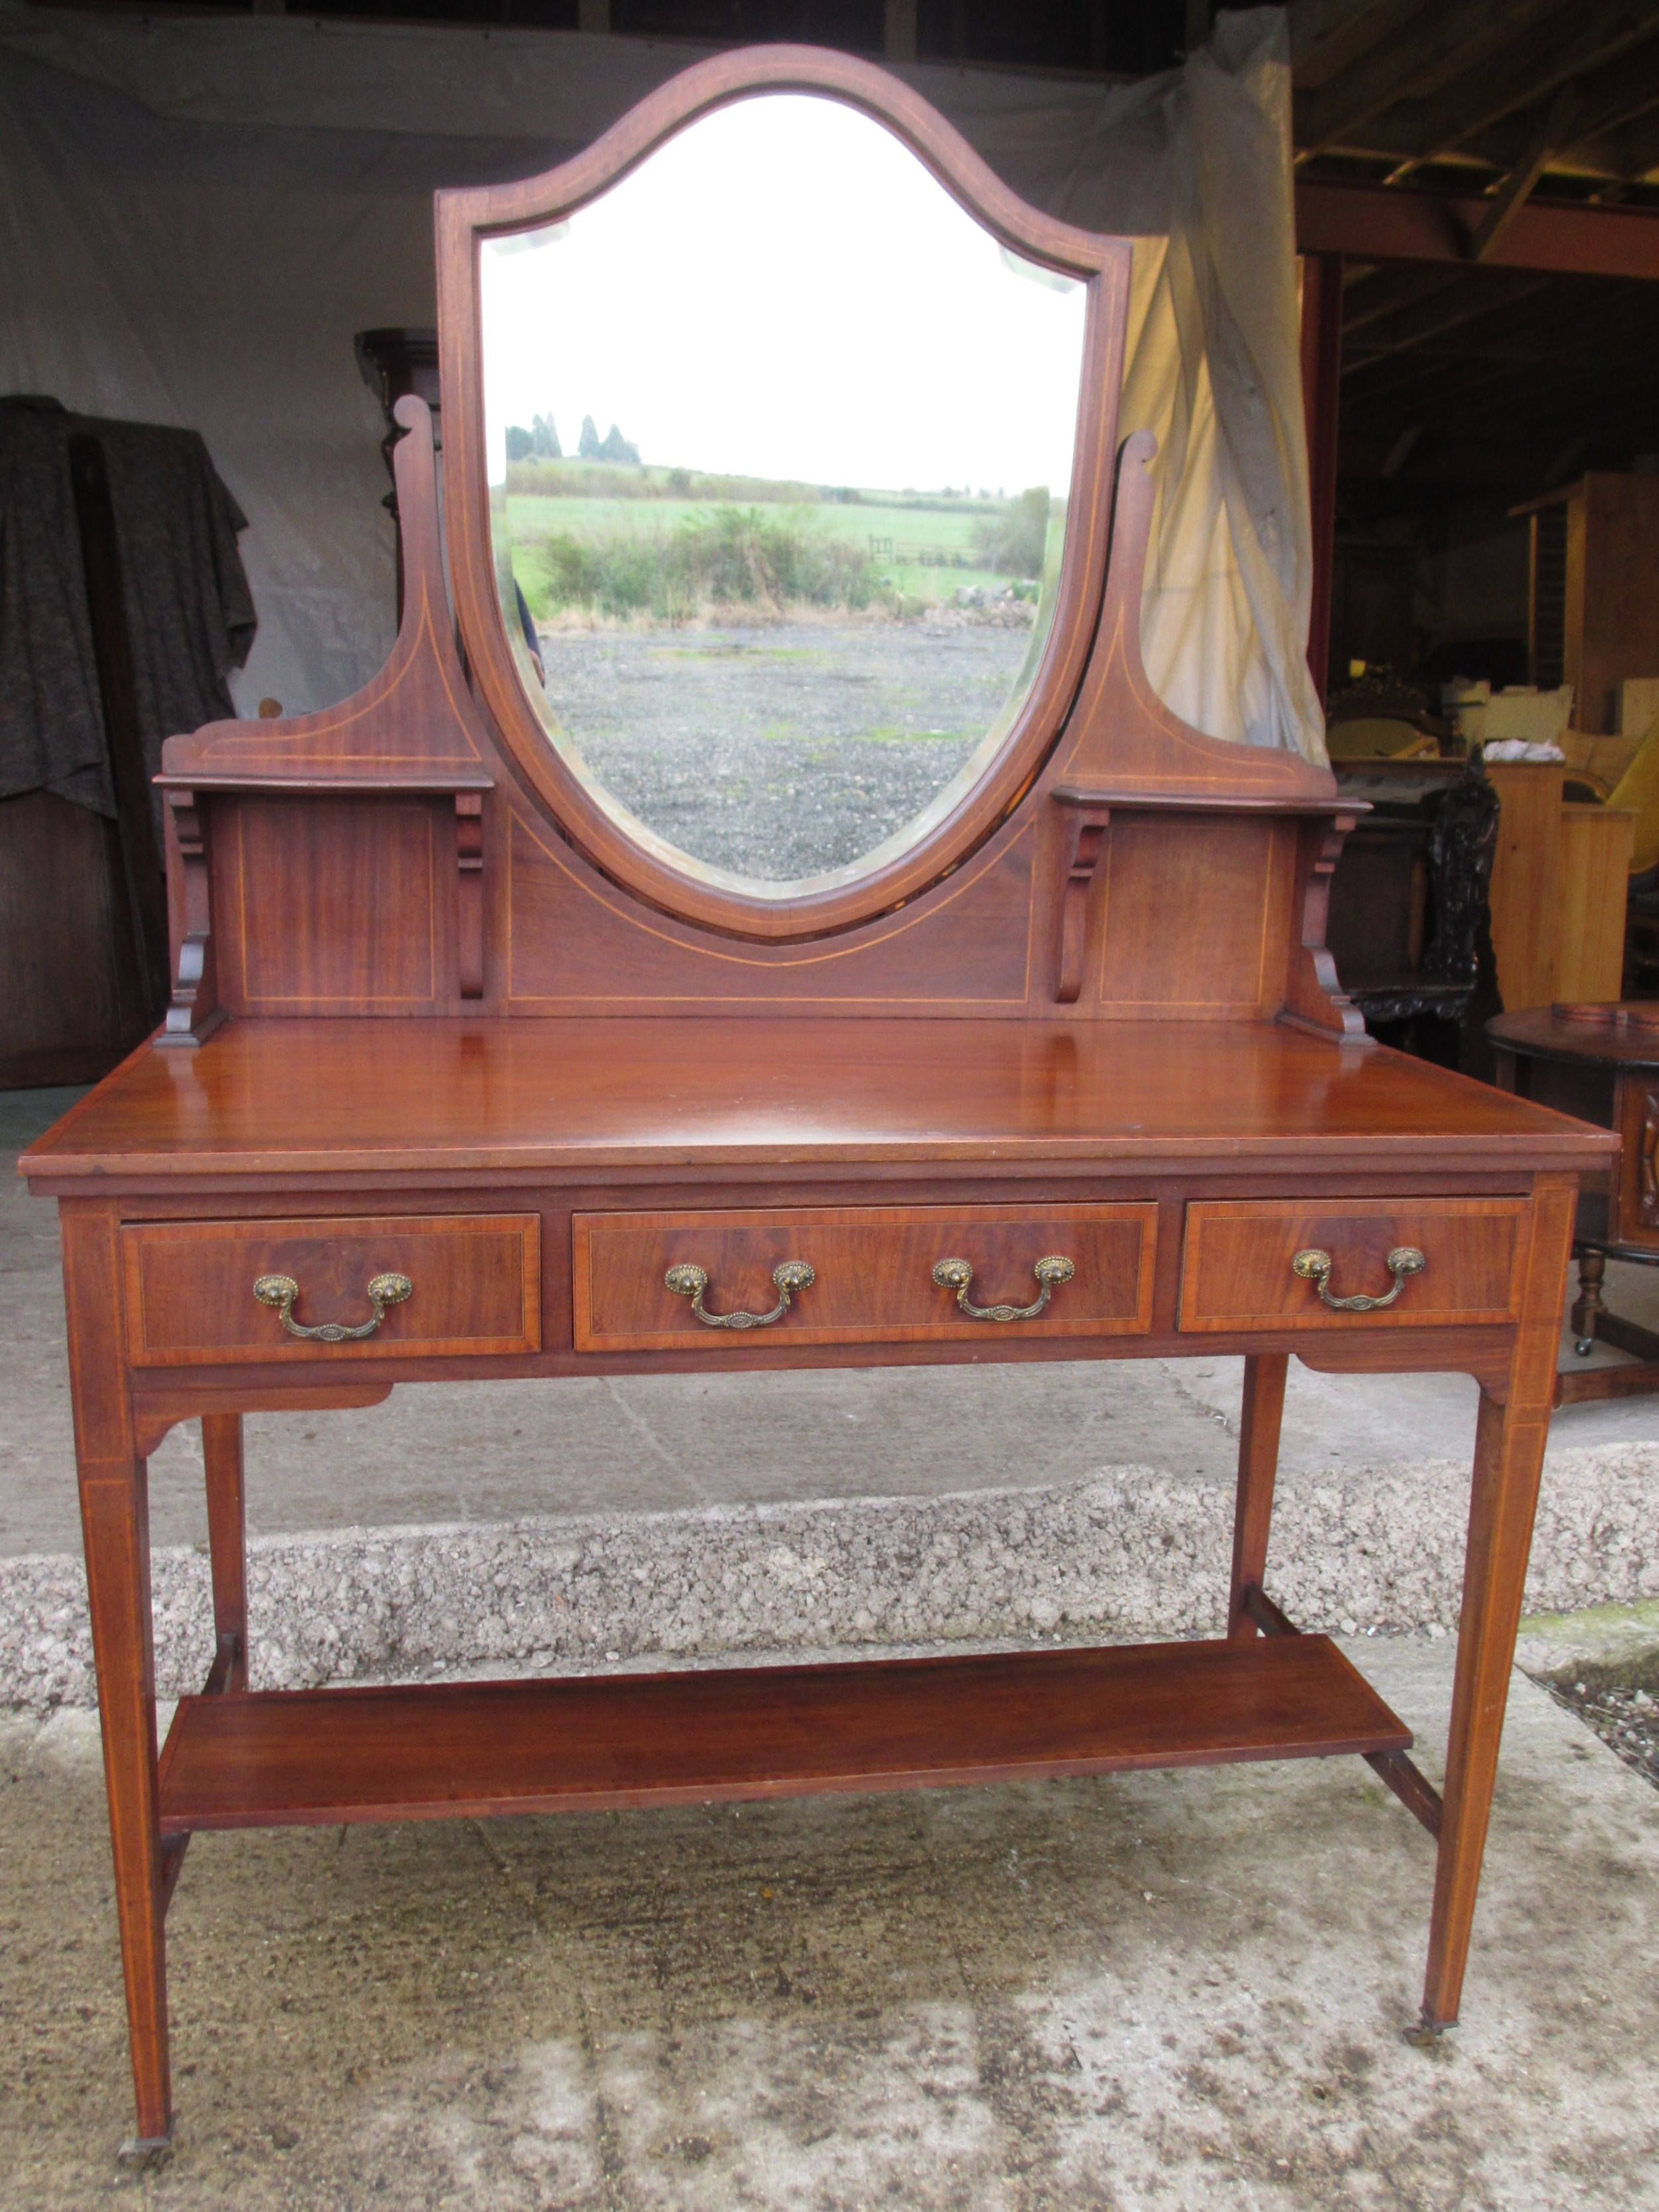 edwardian crossbanded mahogany sheraton style shield mirror dressing table